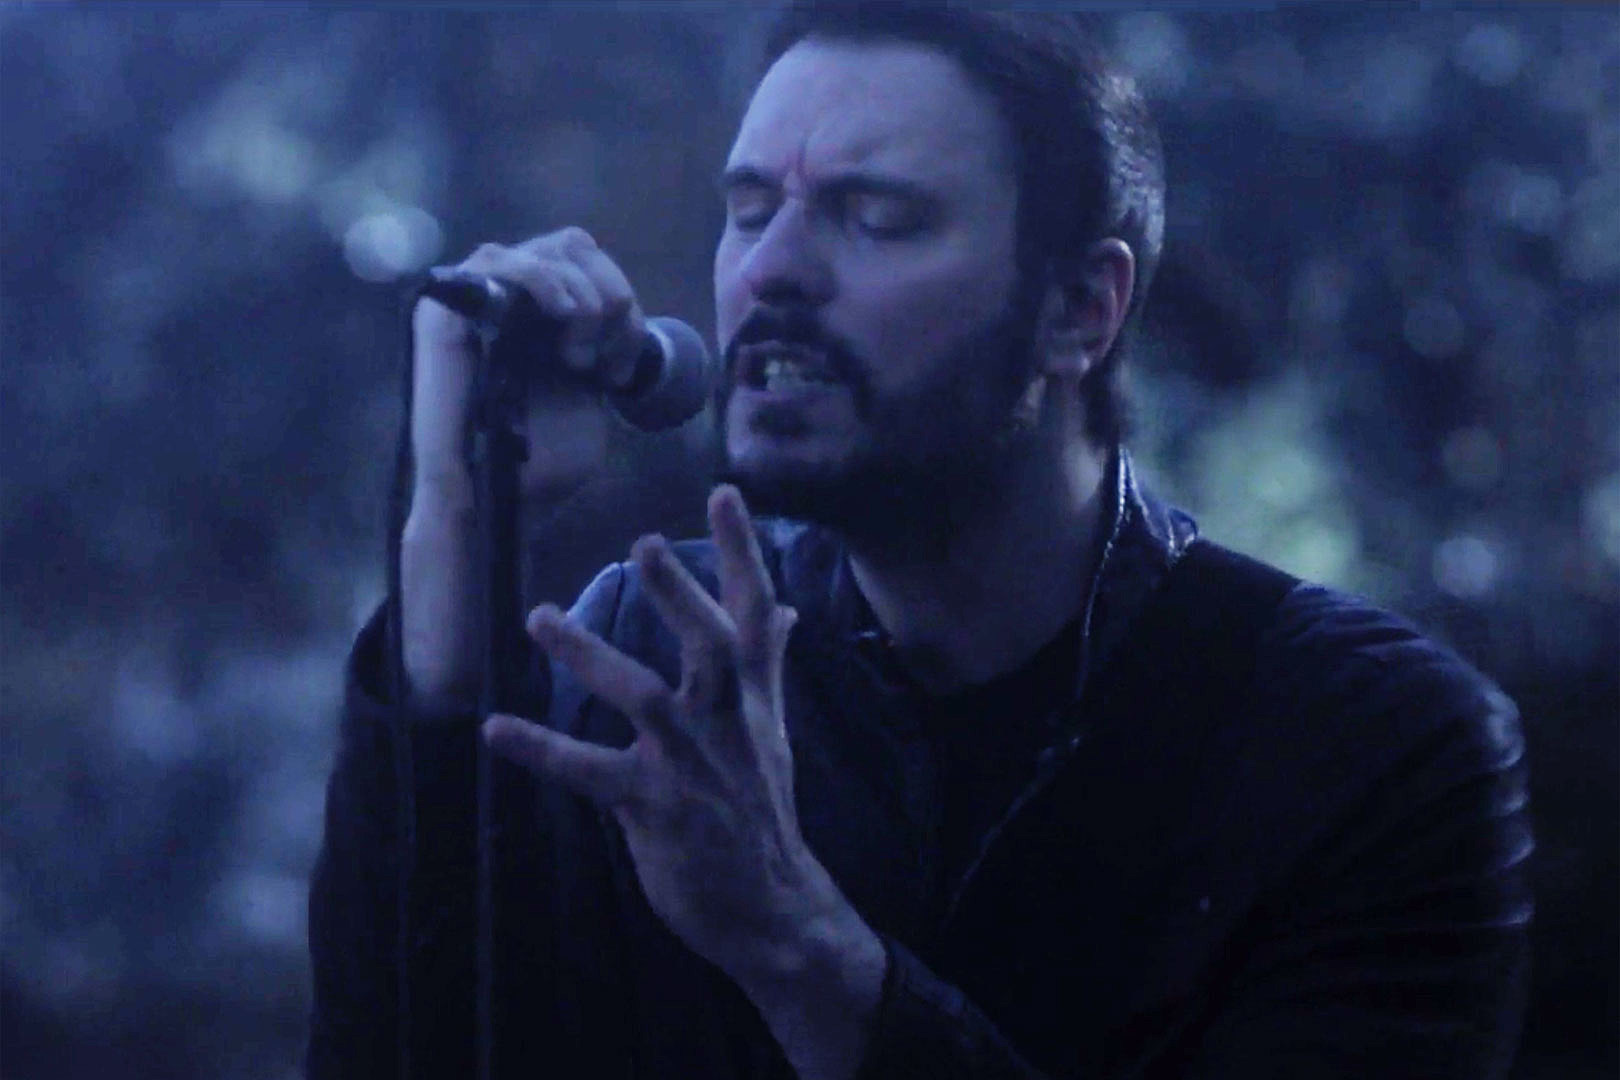 Breaking Benjamin Reveal Chilling Tale of Father's Anguish in New 'Red Cold River' Video